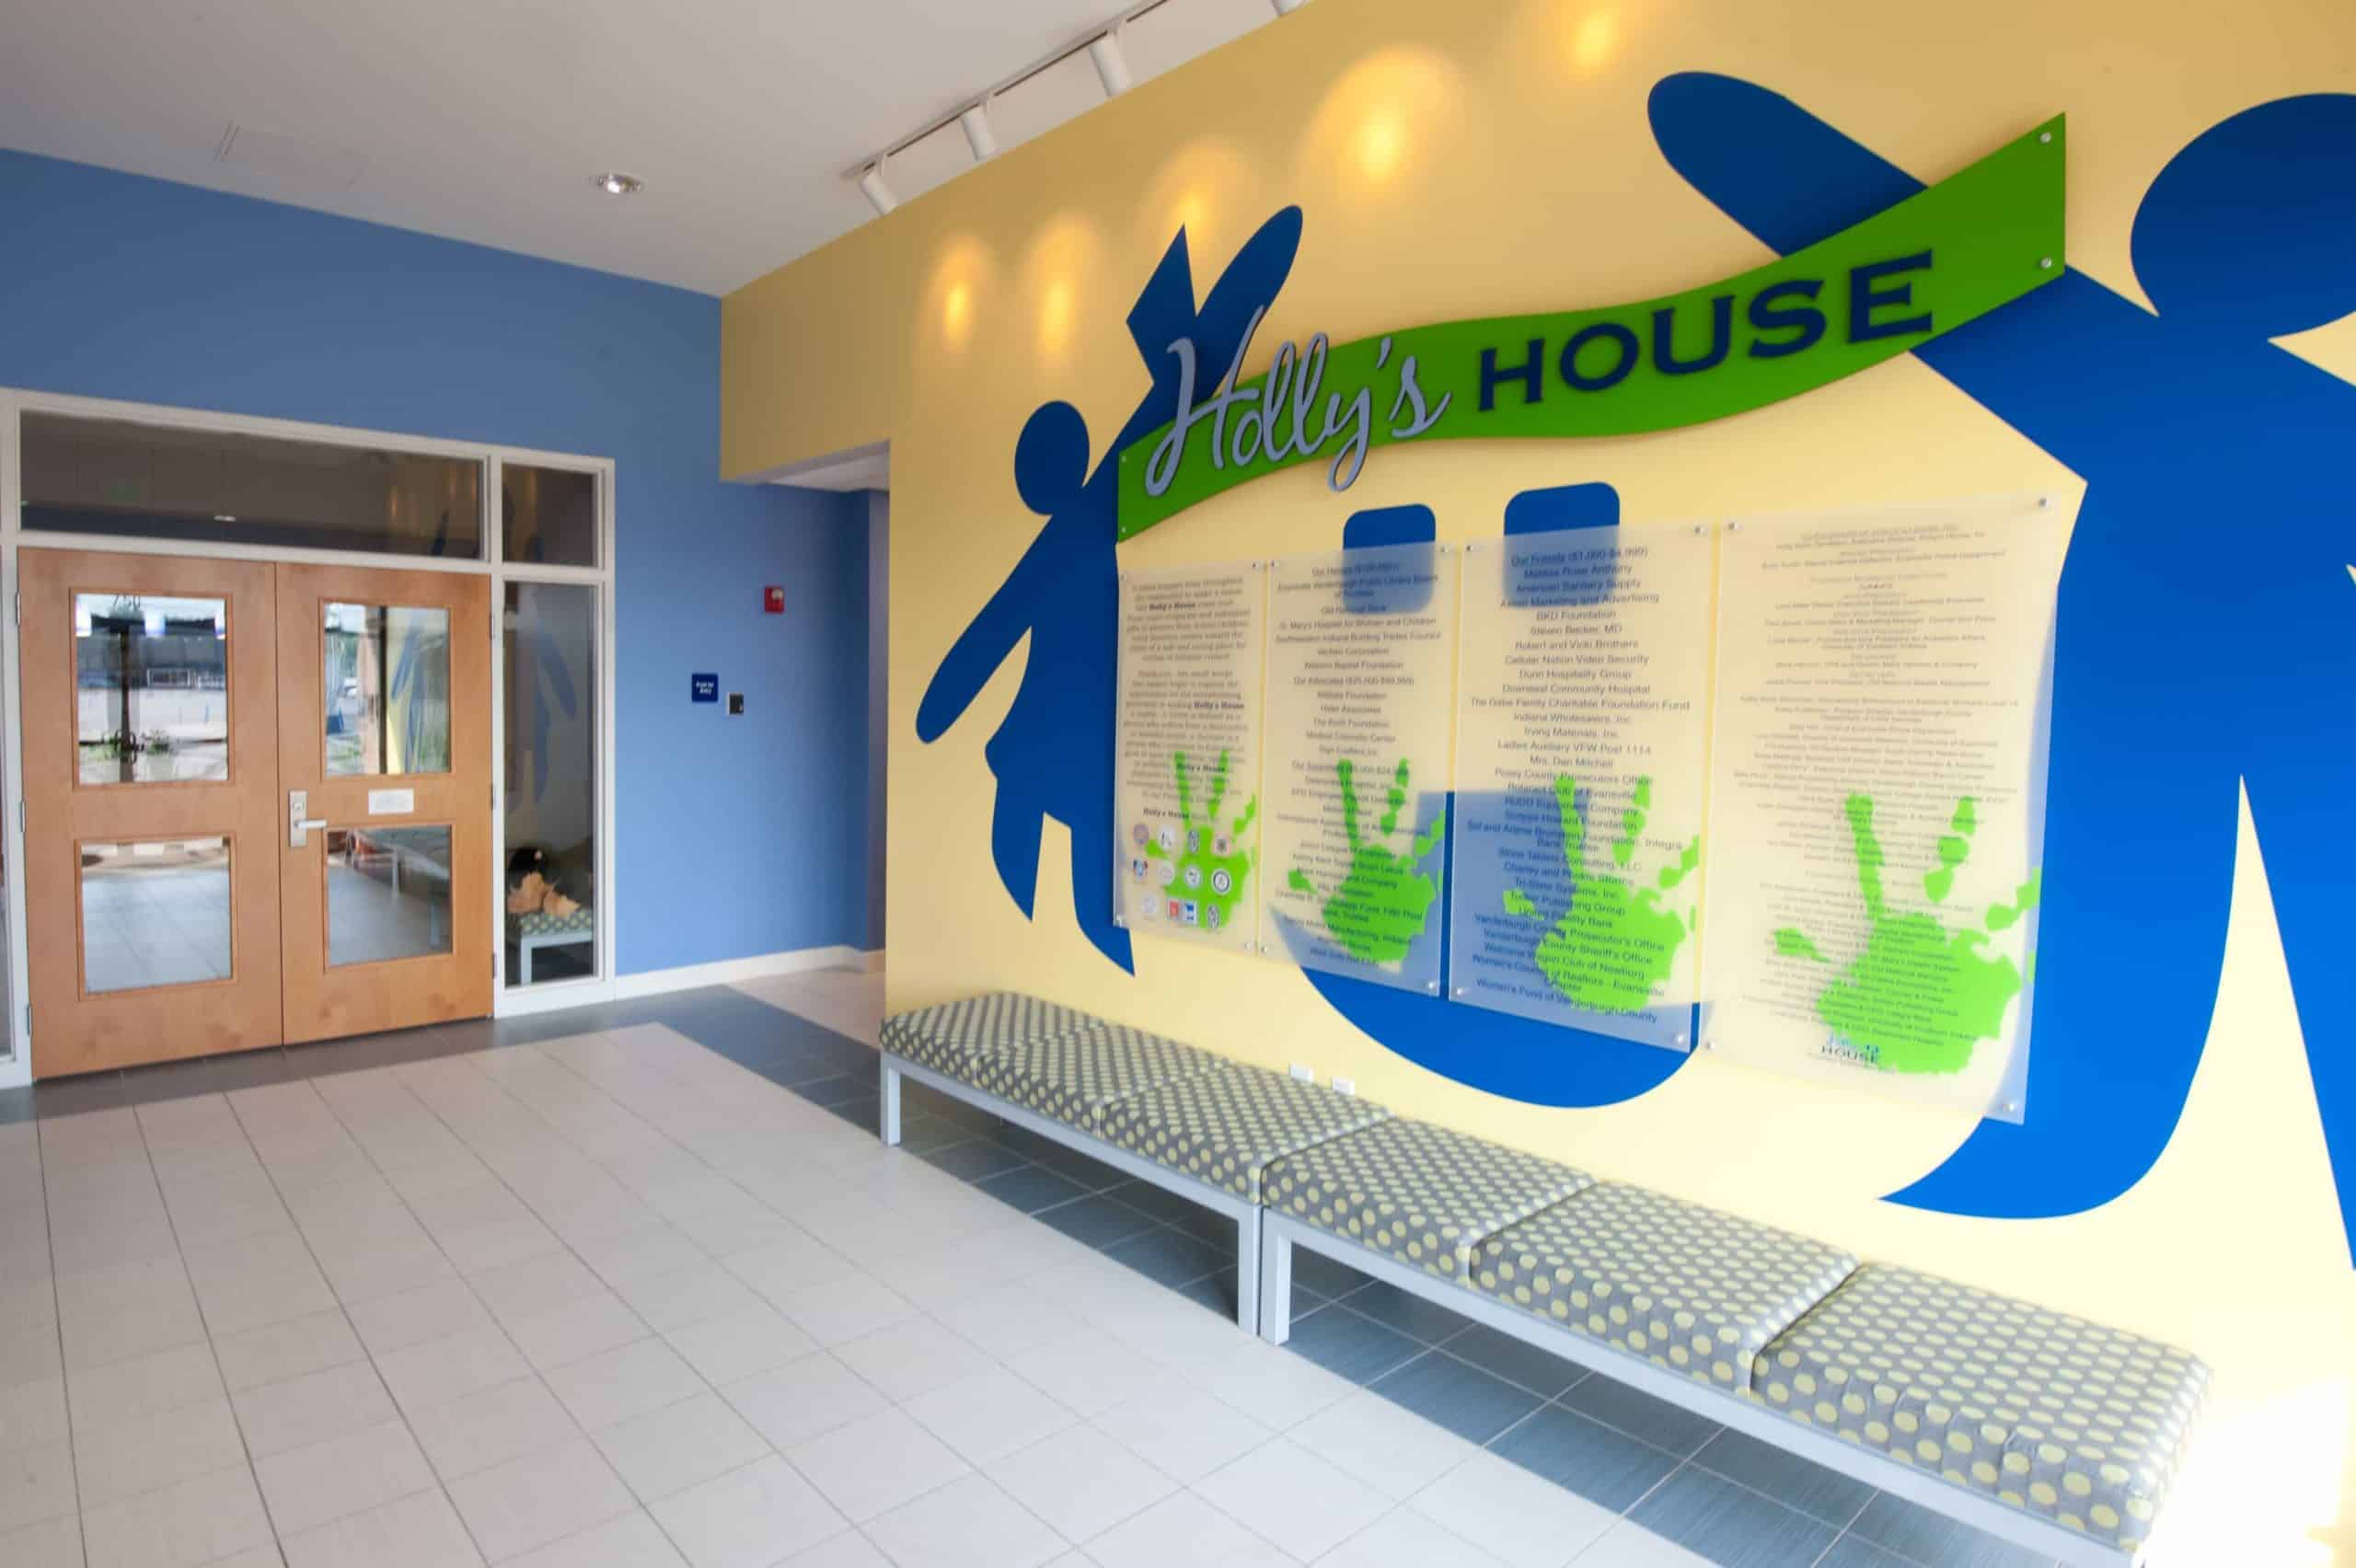 Holly's House Child Advocacy Center in Evansville, Indiana